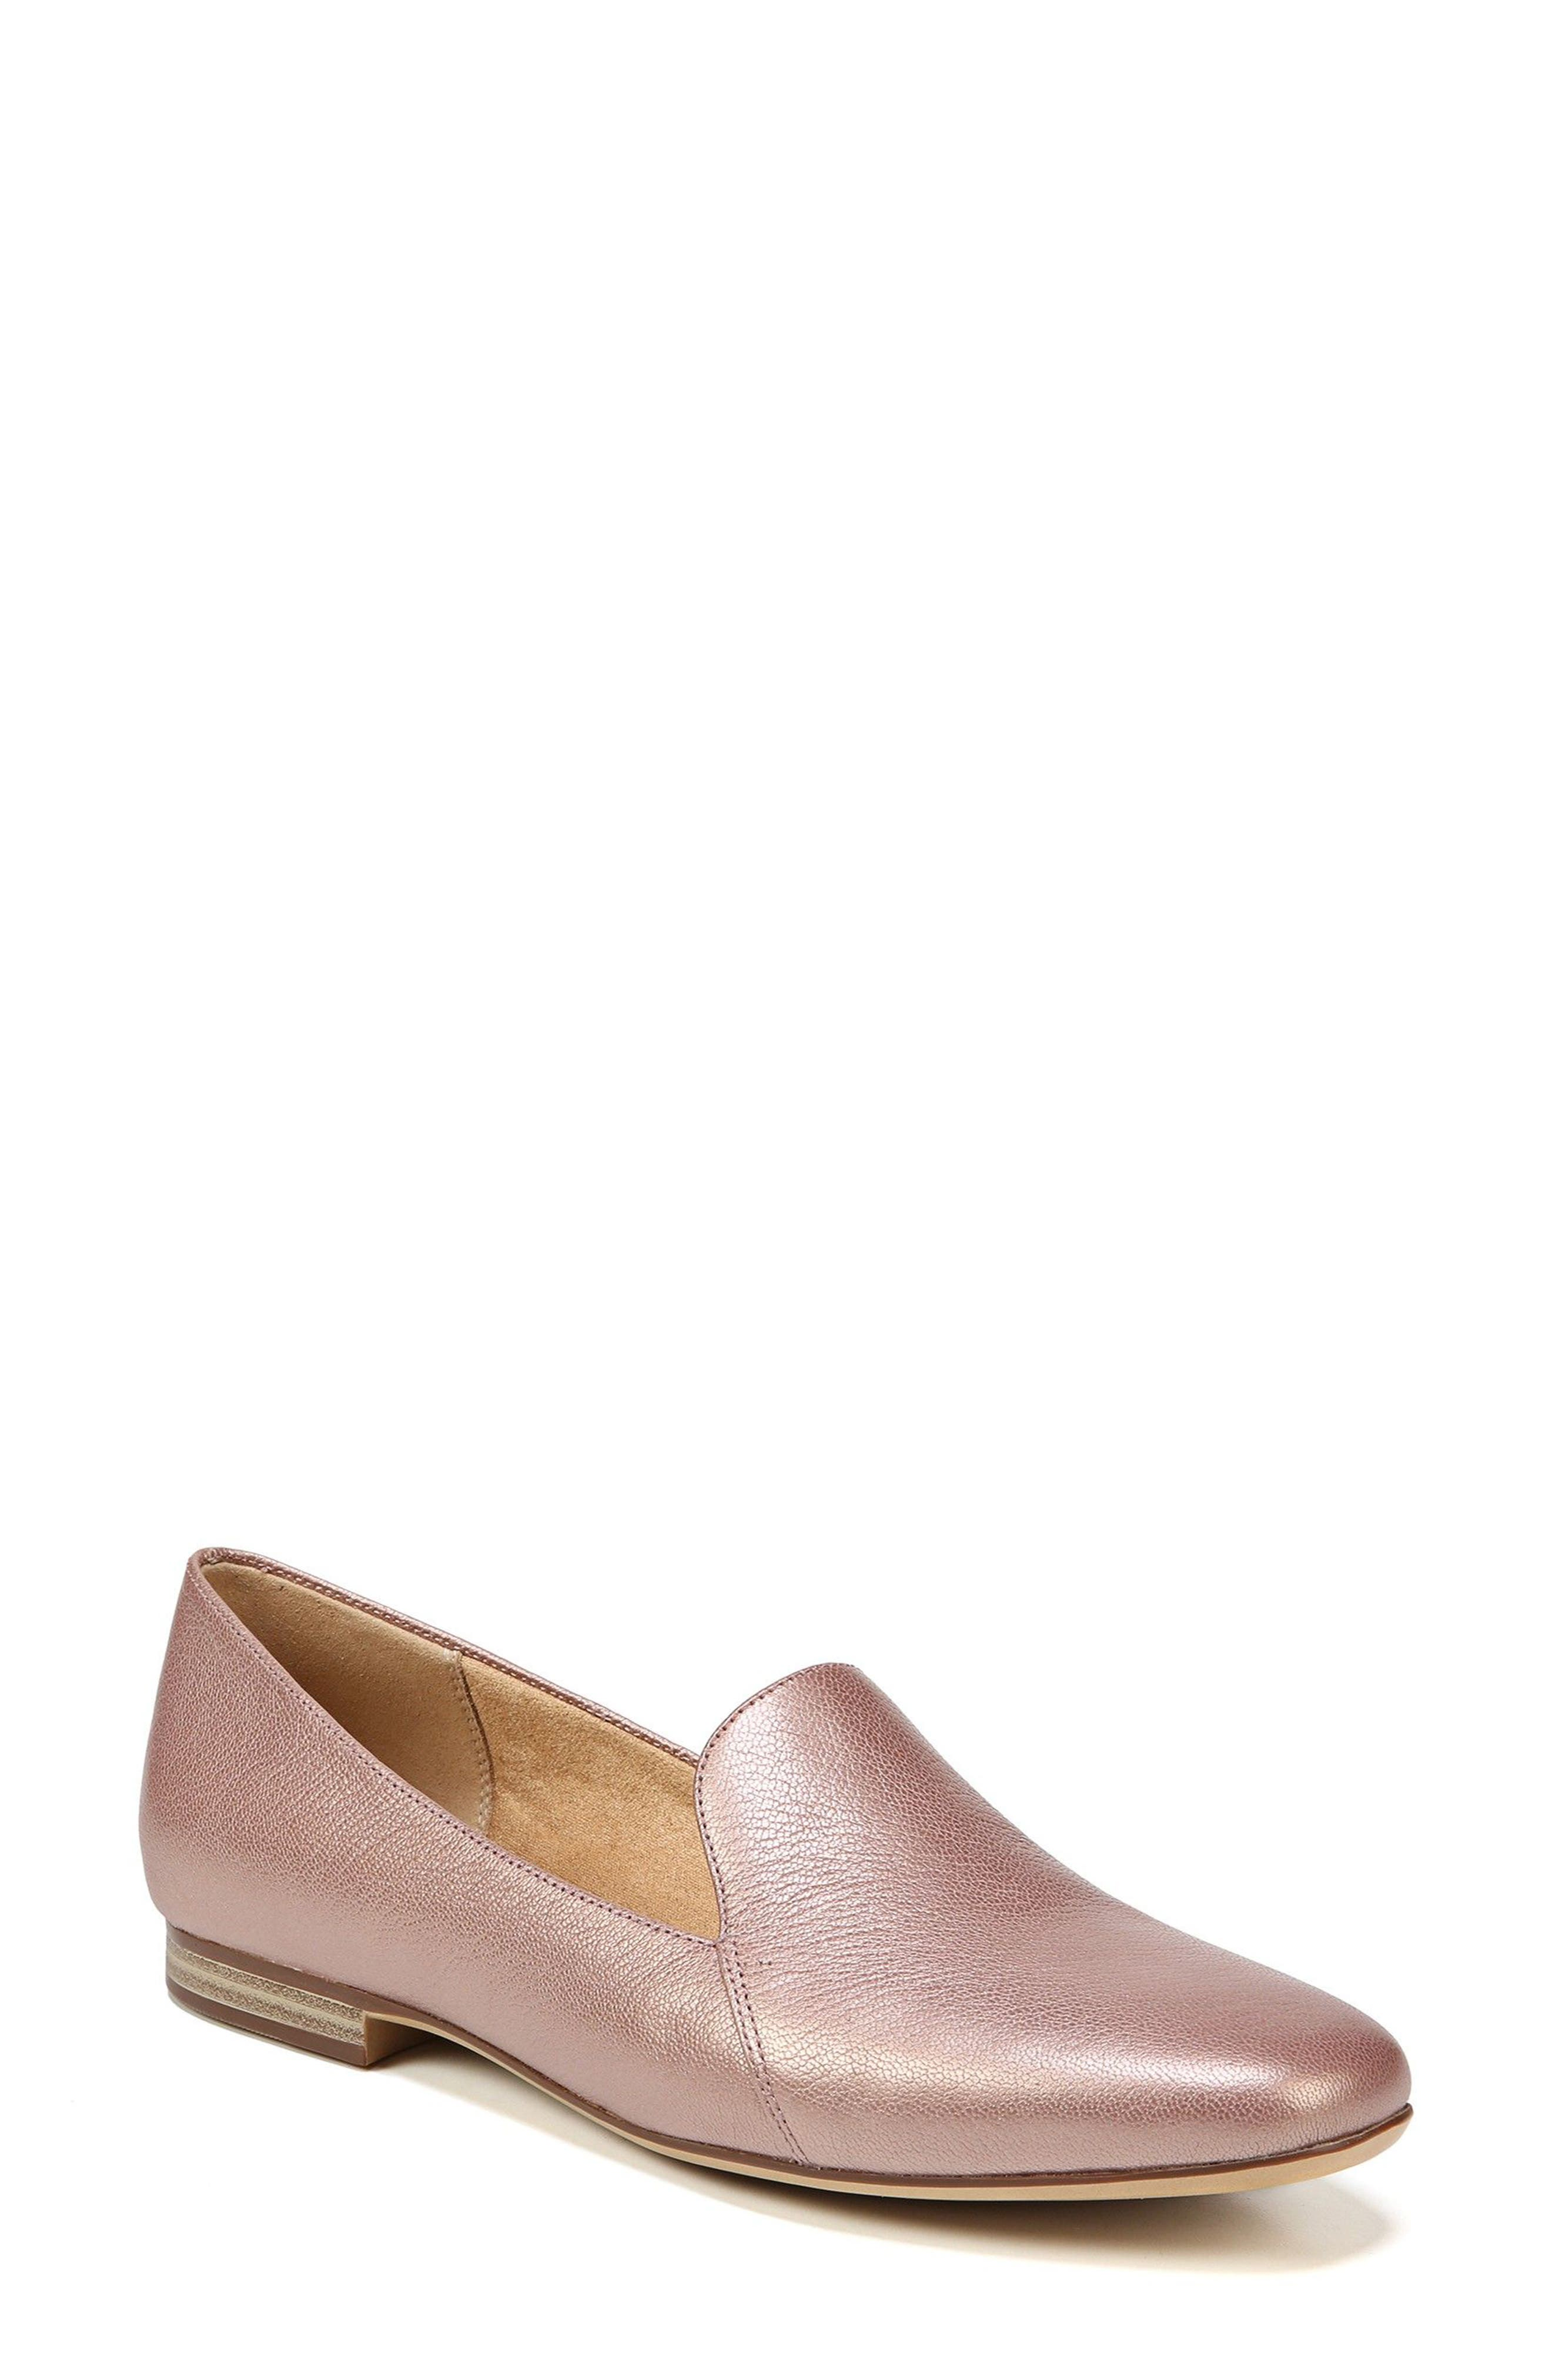 Emiline Flat Loafer,                         Main,                         color, ROSE GOLD LEATHER